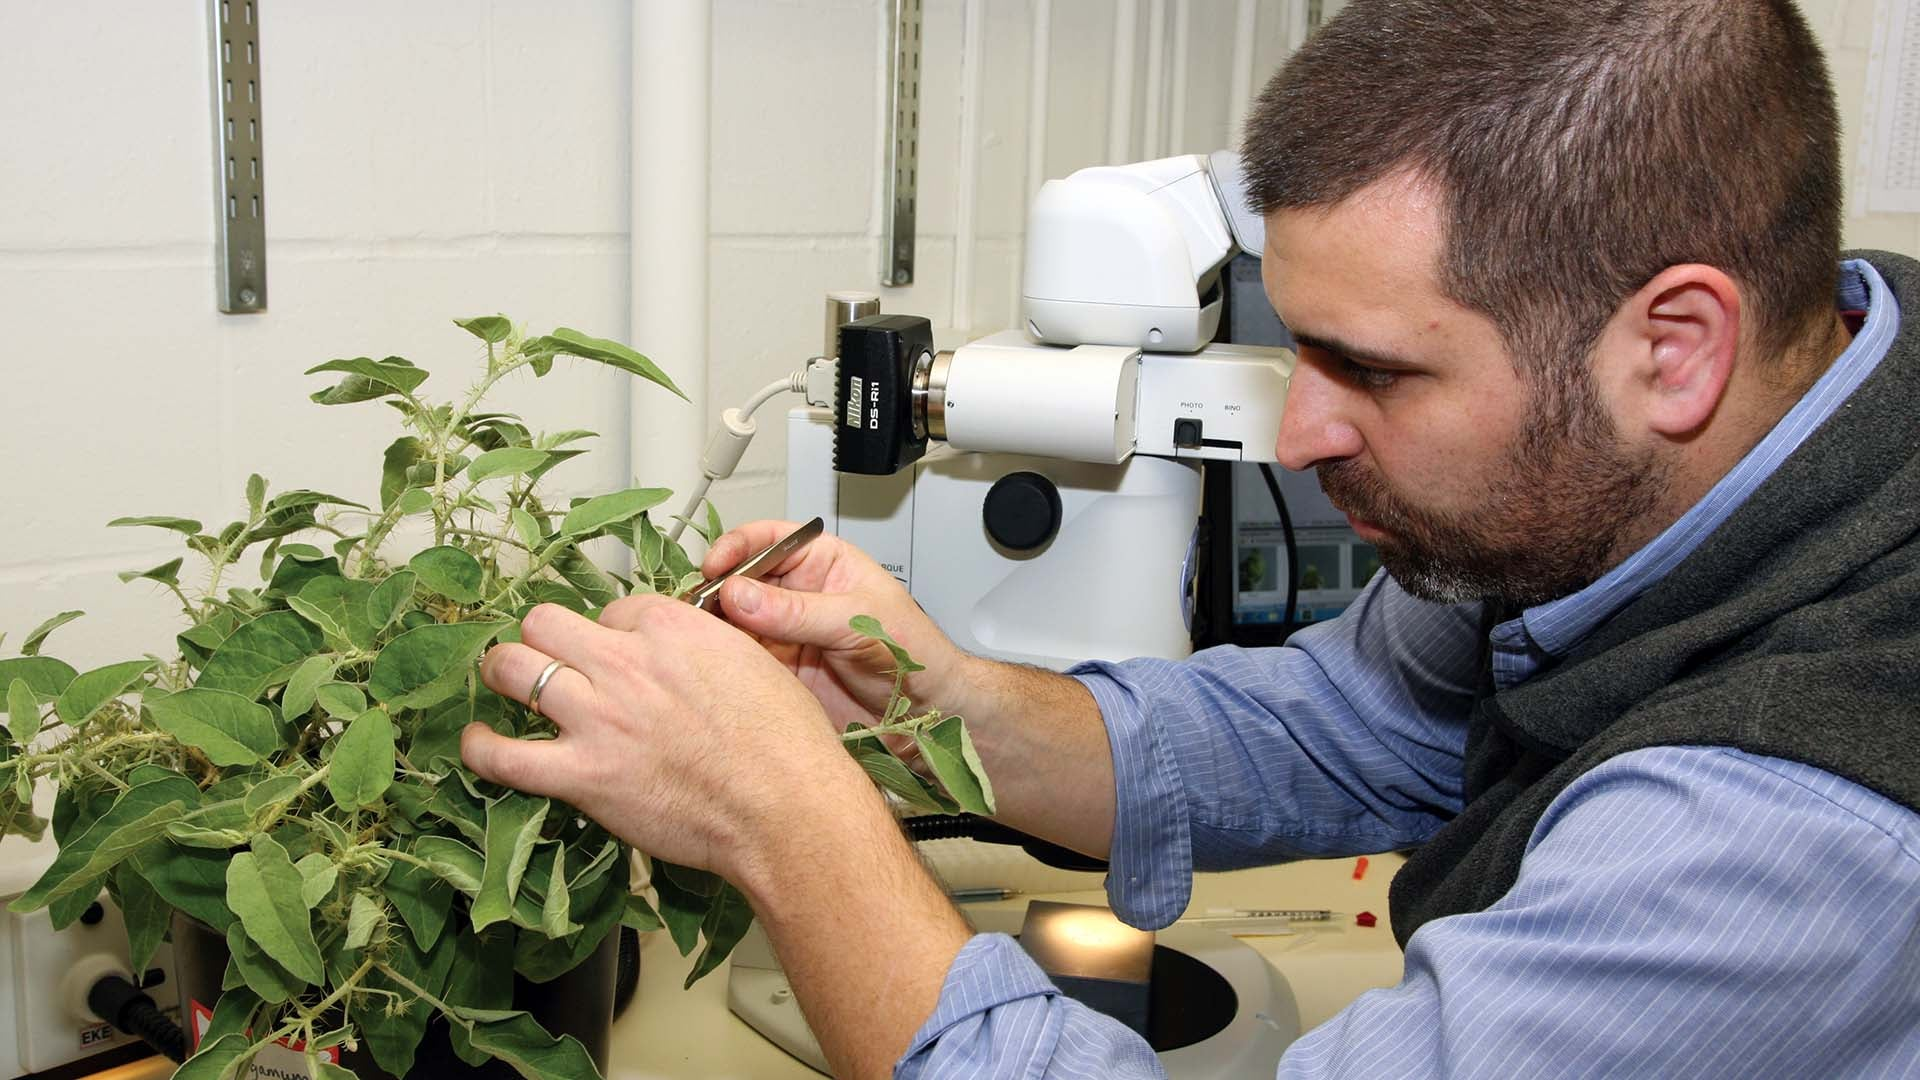 photo of Zachary Lippman working with plants